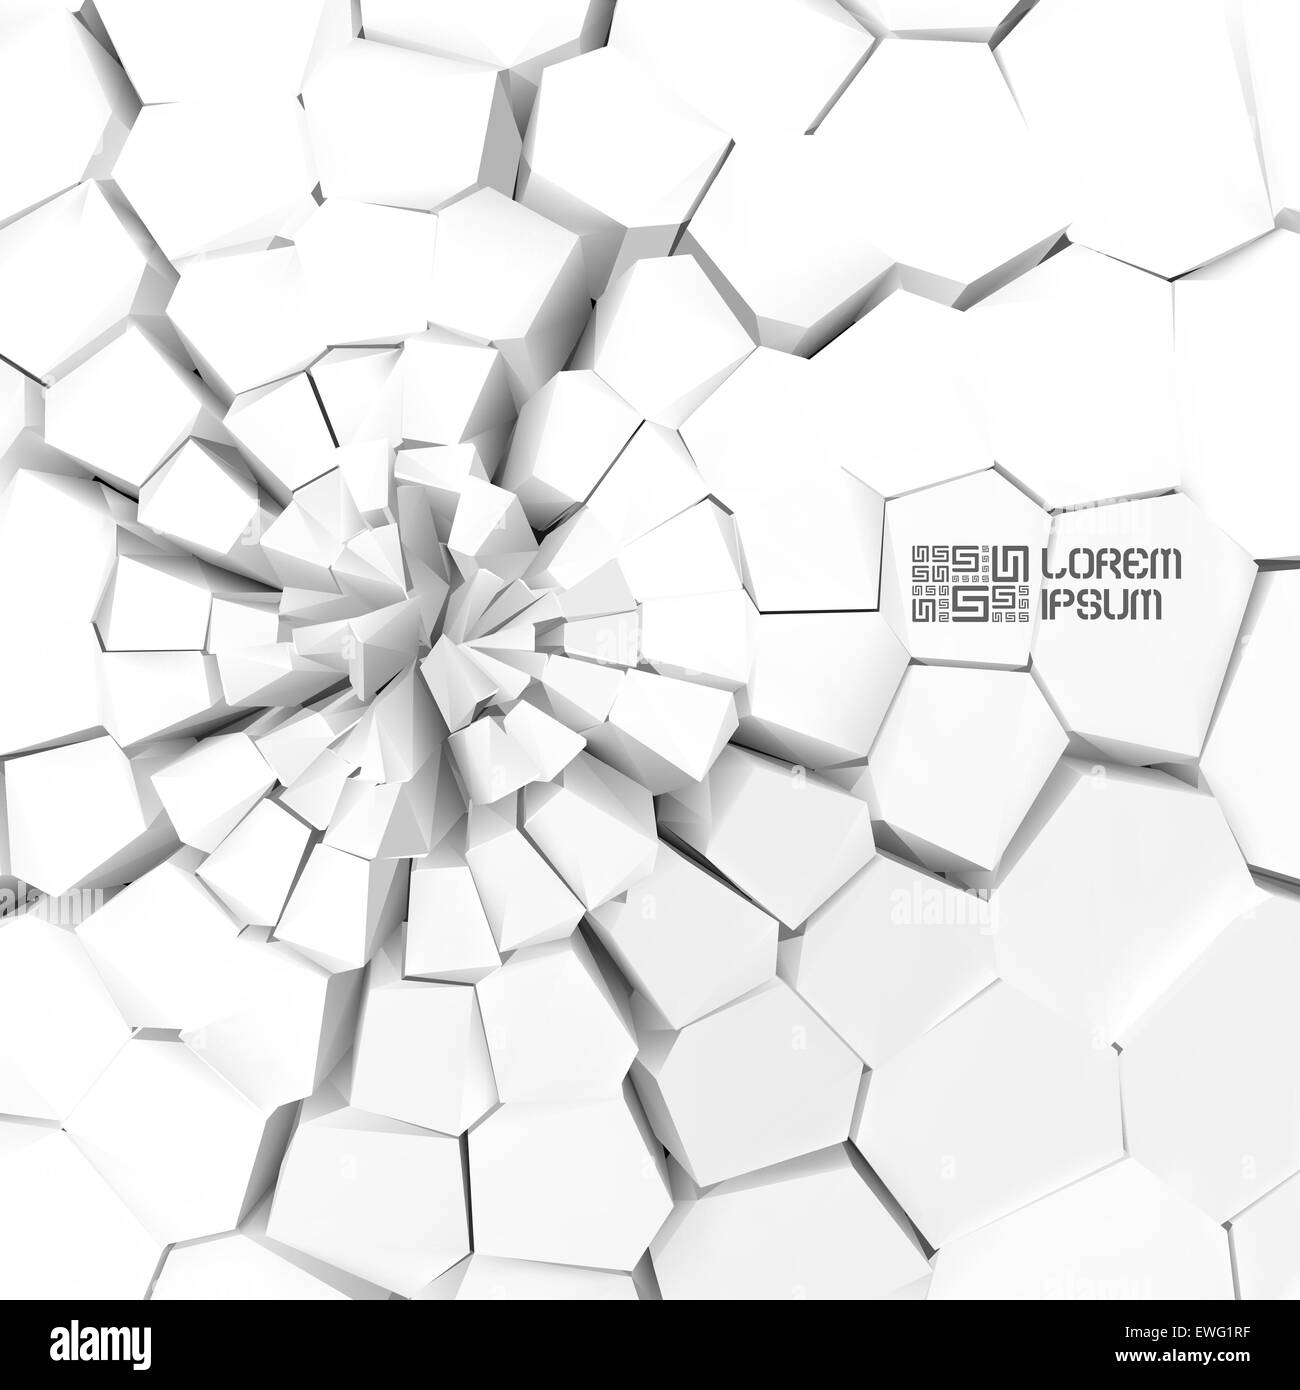 Cracked background. Vector illustration. - Stock Vector